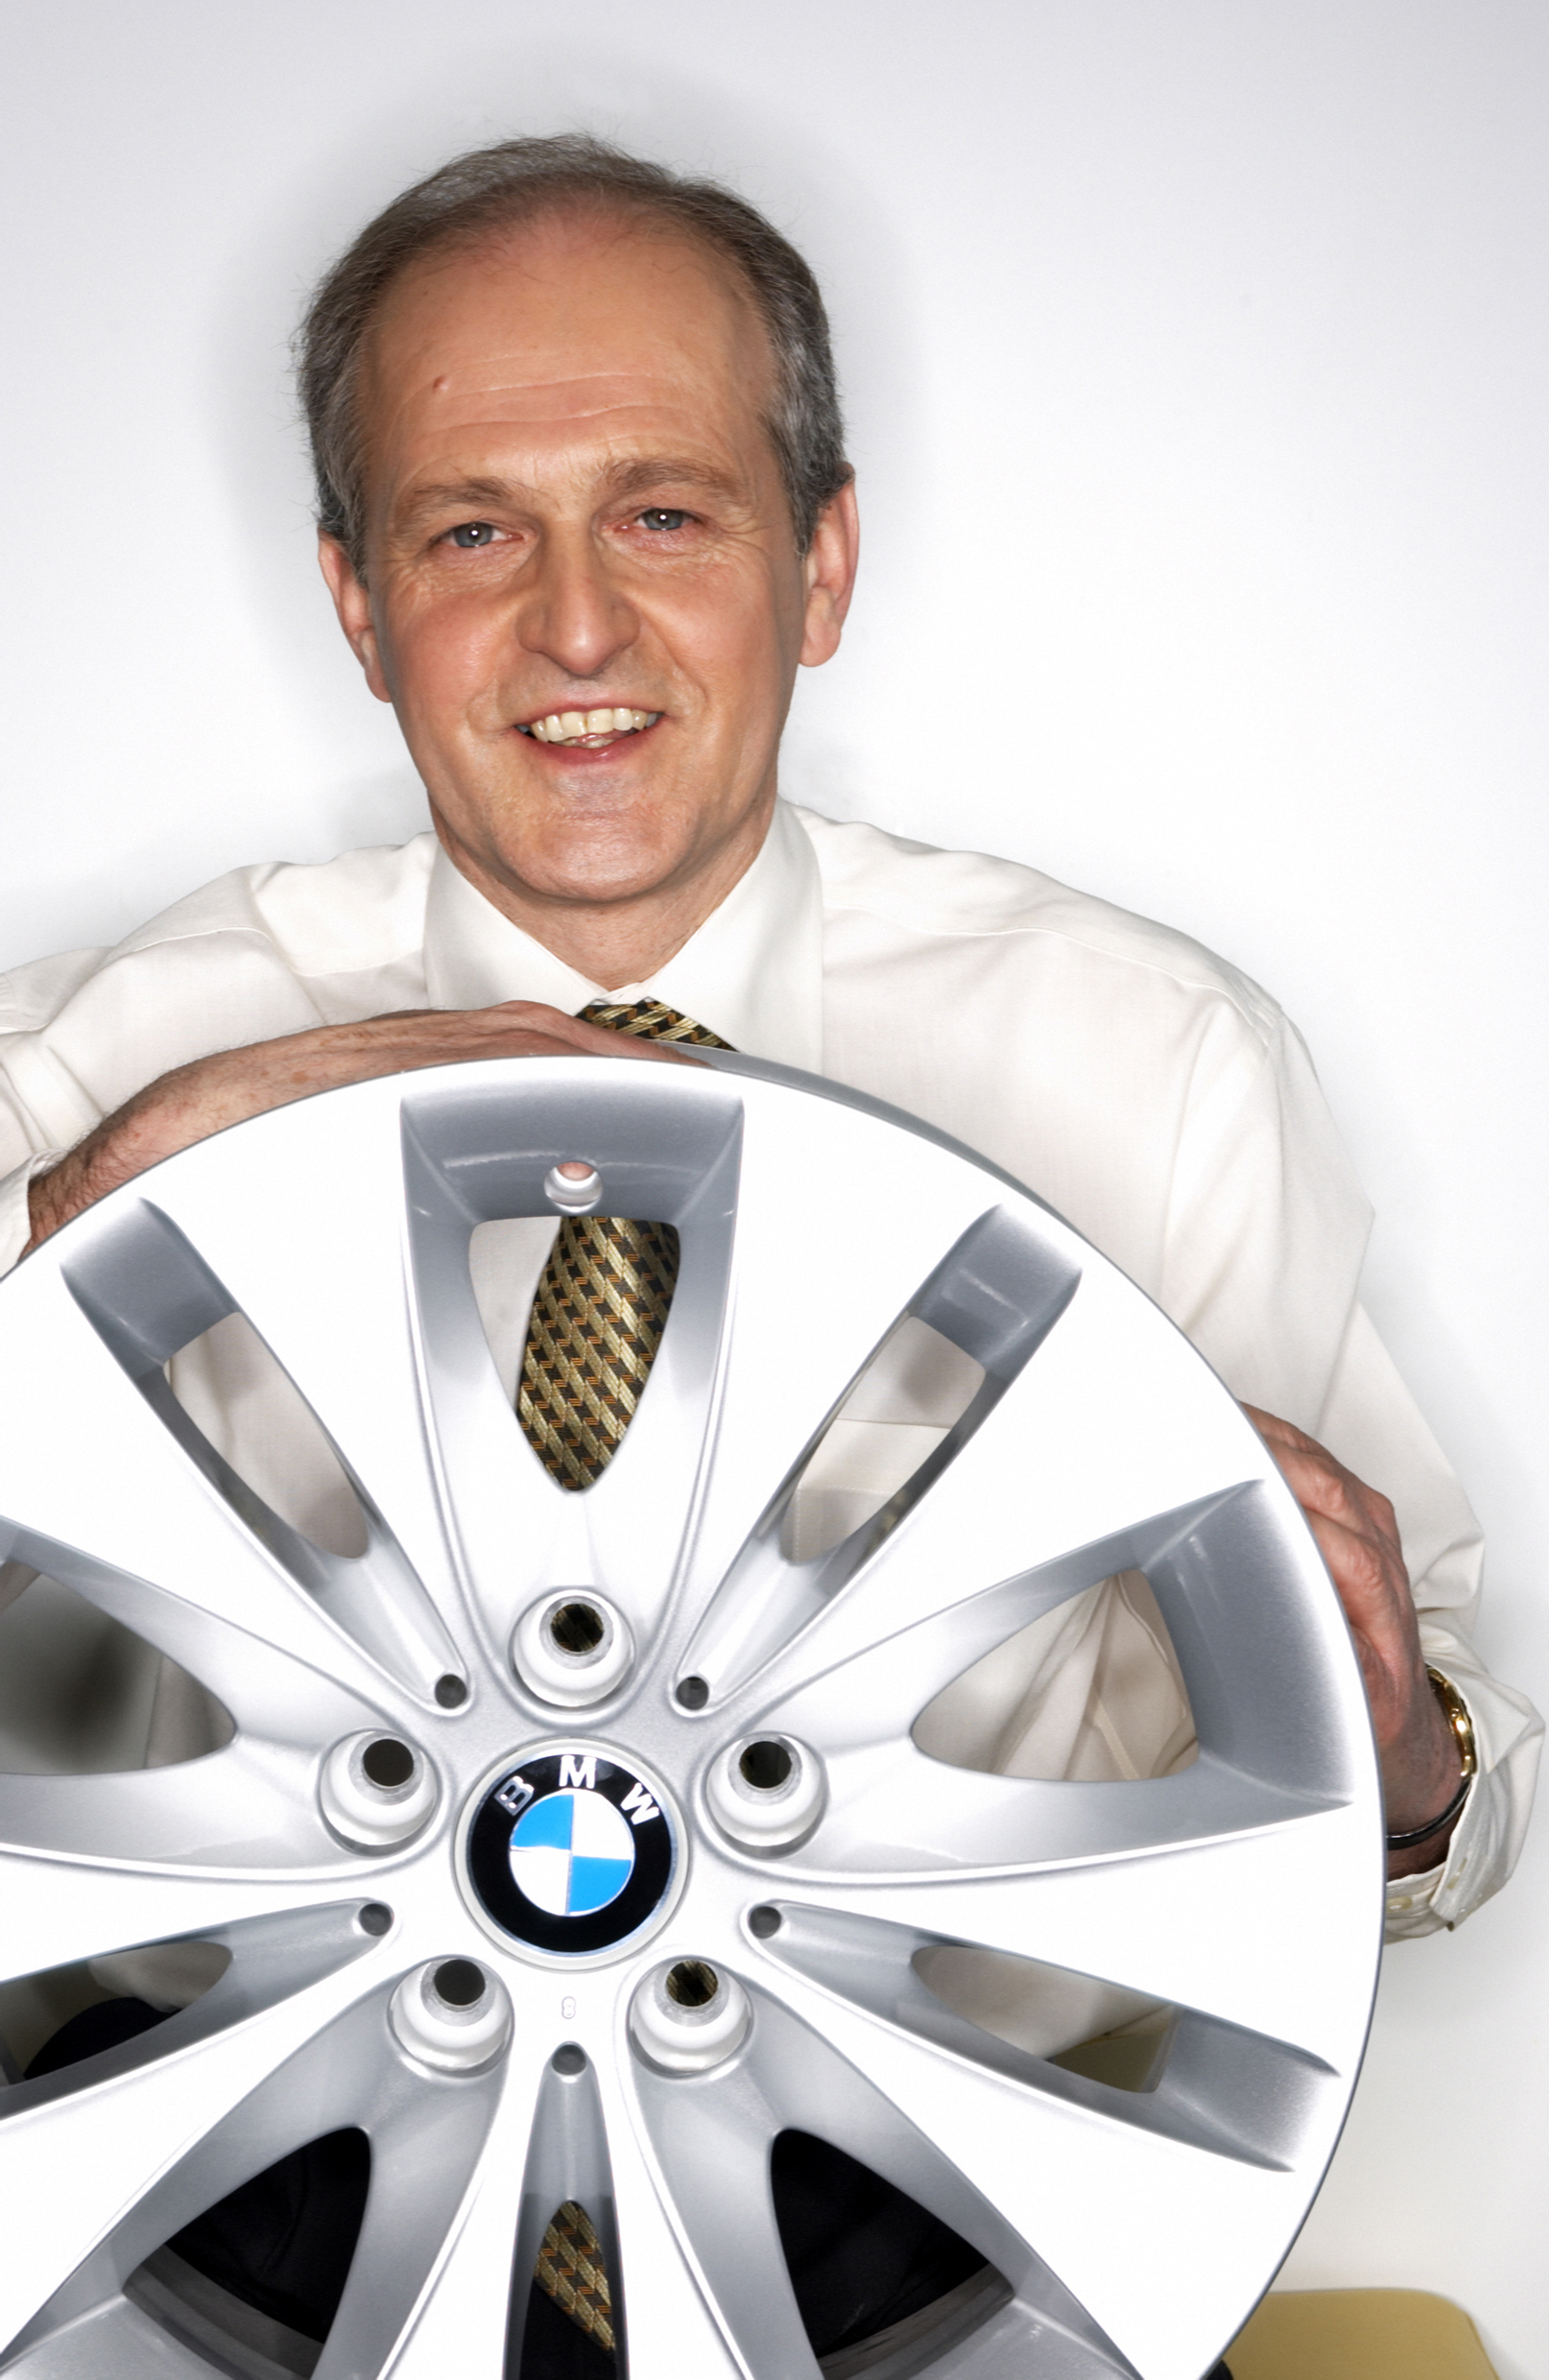 Commercial Portrait for Bluebell BMW